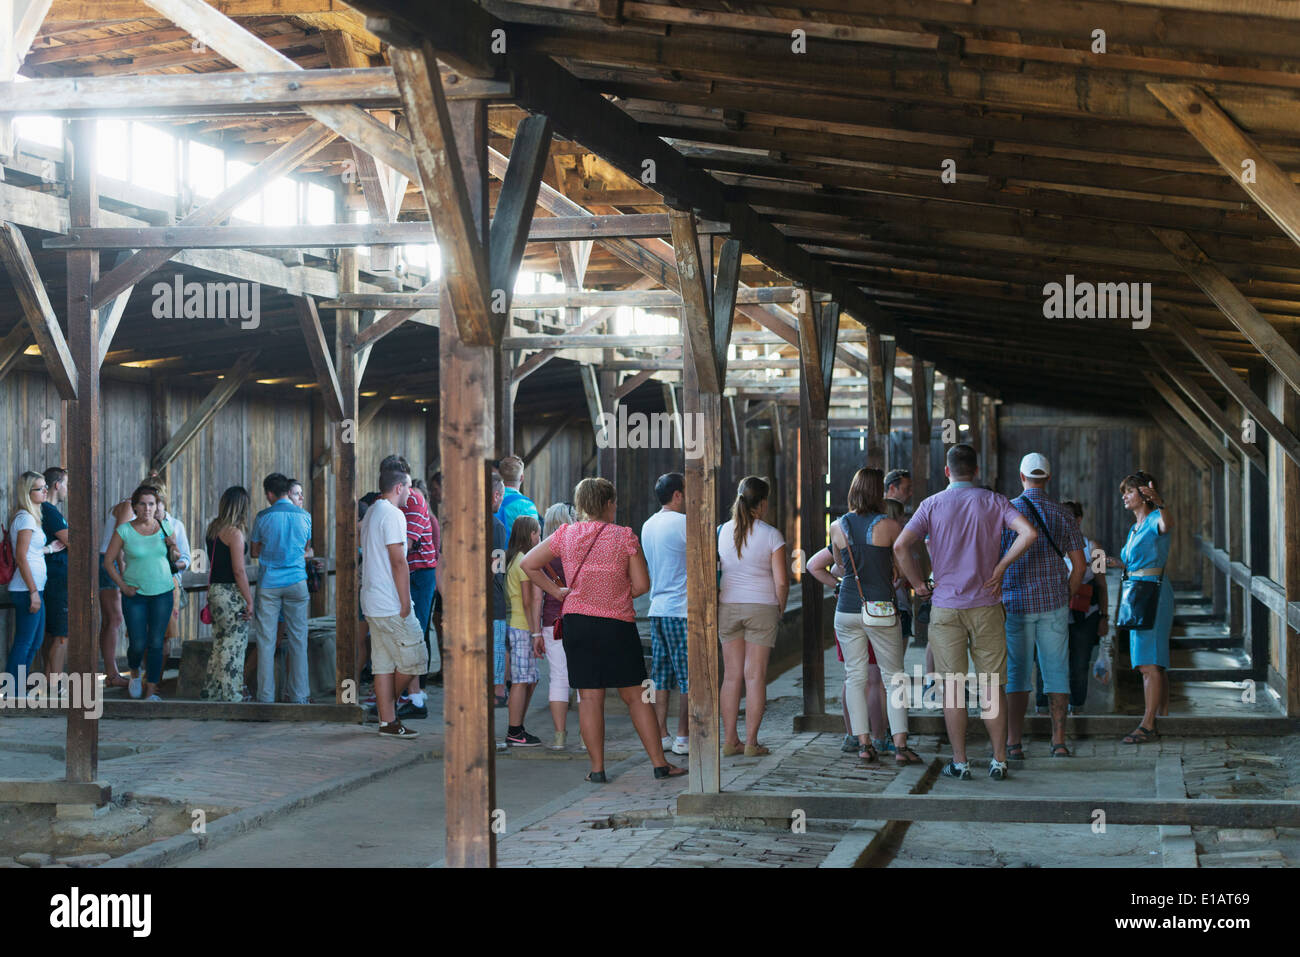 Europe, Poland, Silesia, Oswiecim, tourist at Auschwitz-Birkenau, German Nazi Concentration Camp and Extermination Camp, Unesco - Stock Image